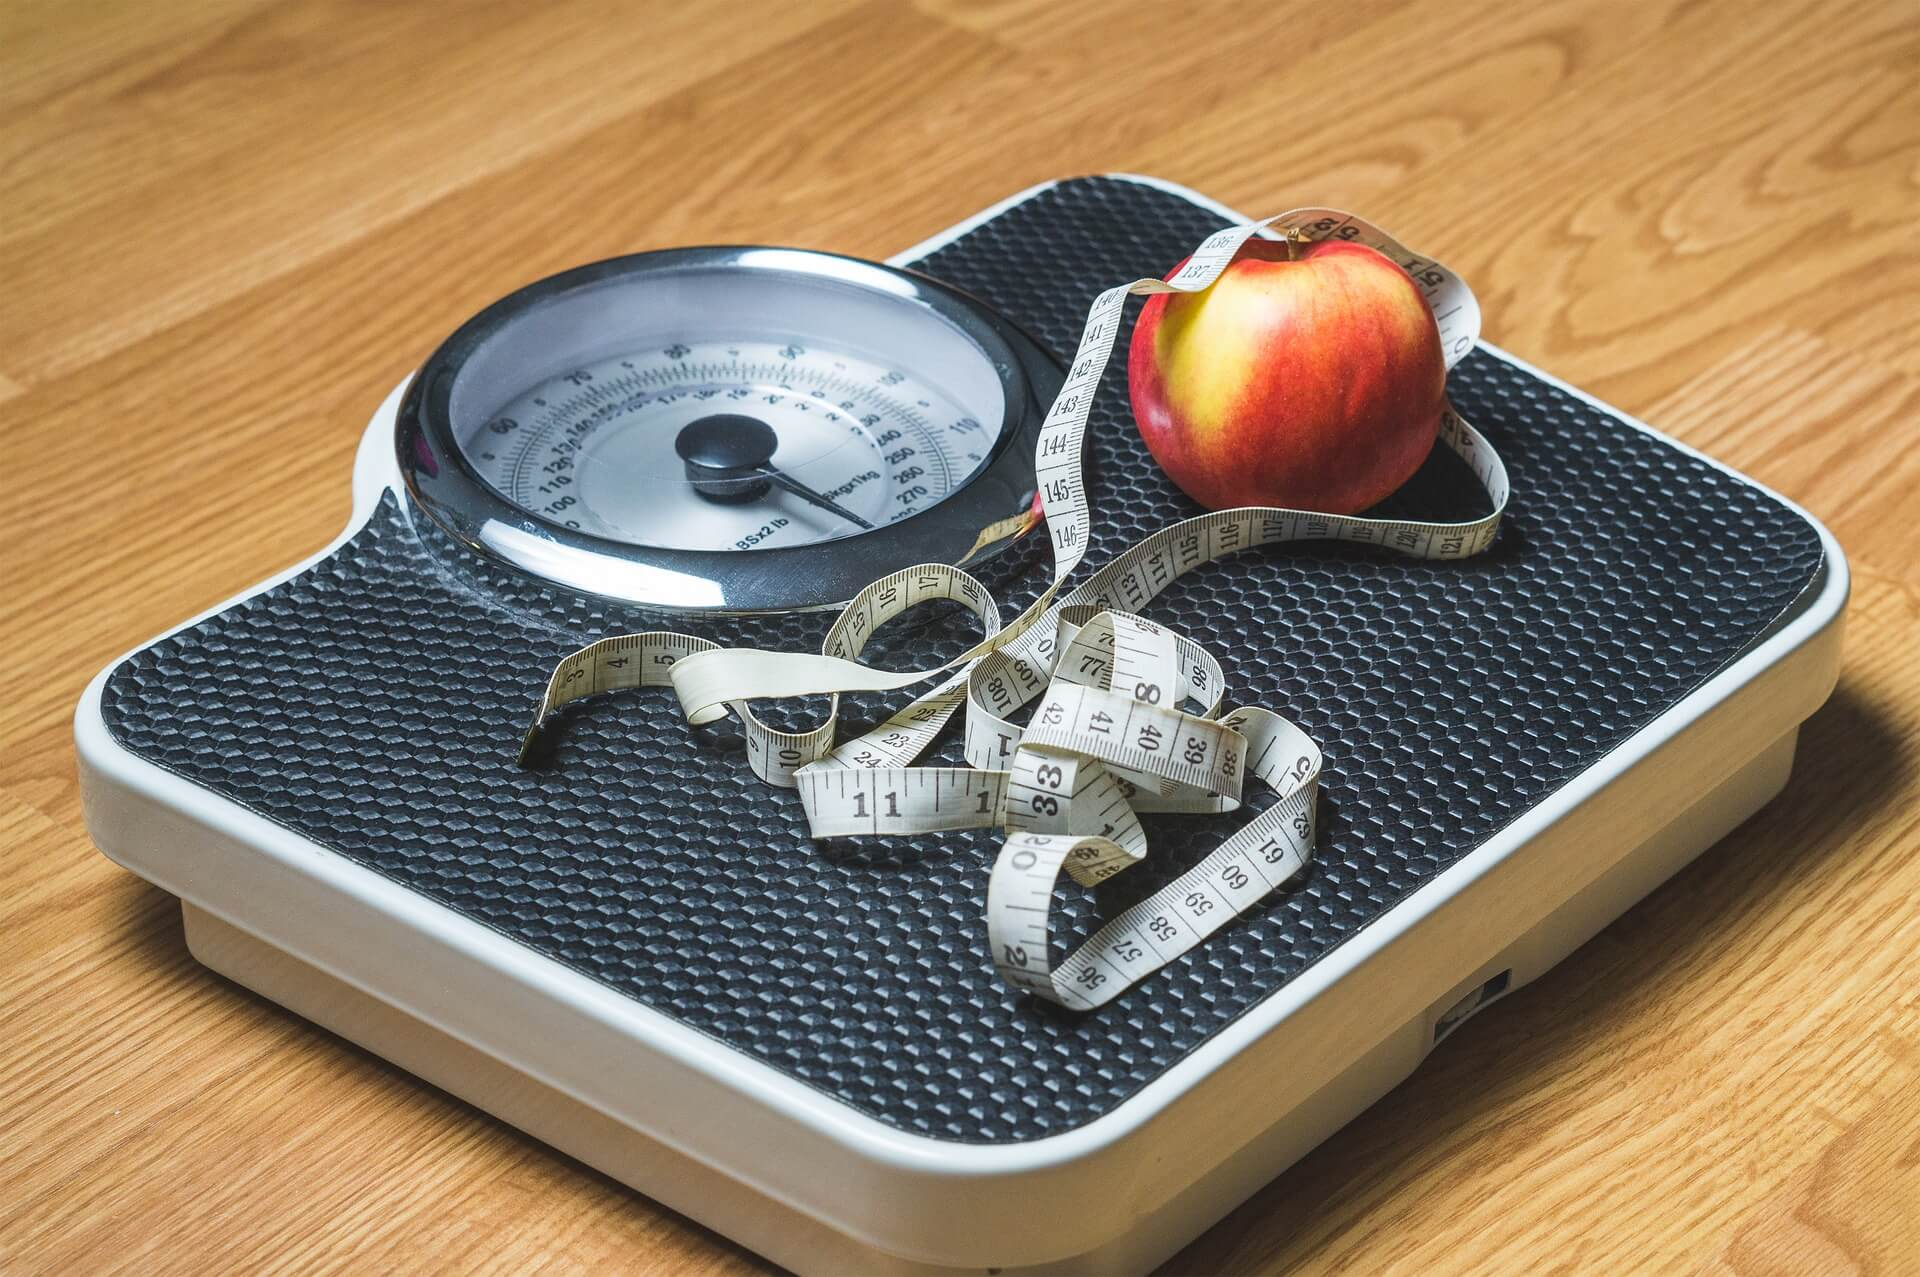 weight scale and an apple on it